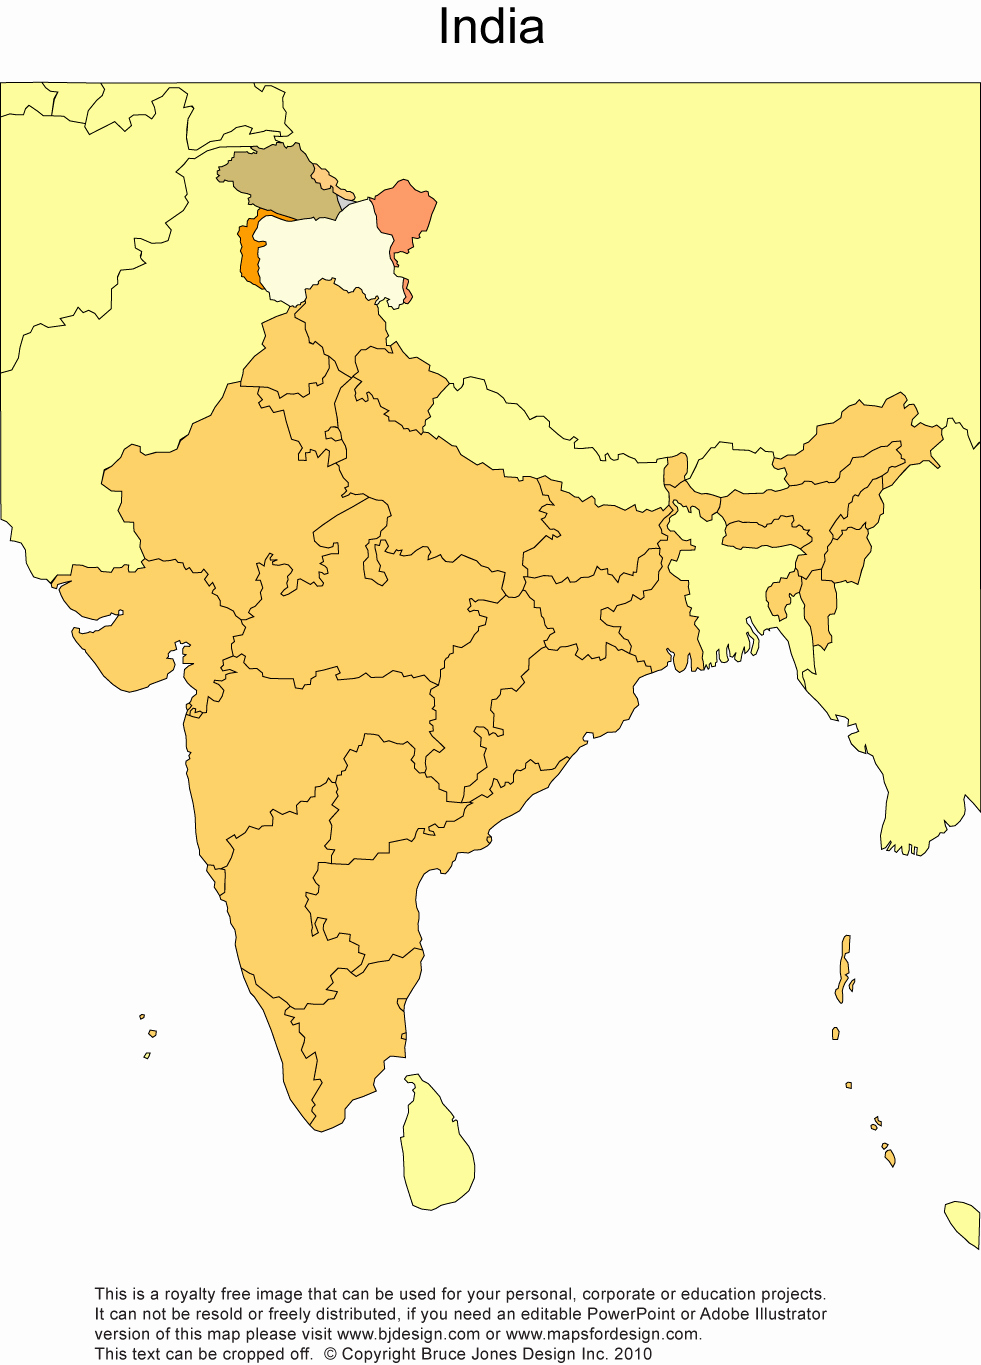 Picture of: Printable Map Of India Unique India Printable Blank Blank Political Map Of India 1304850 Hd Wallpaper Backgrounds Download